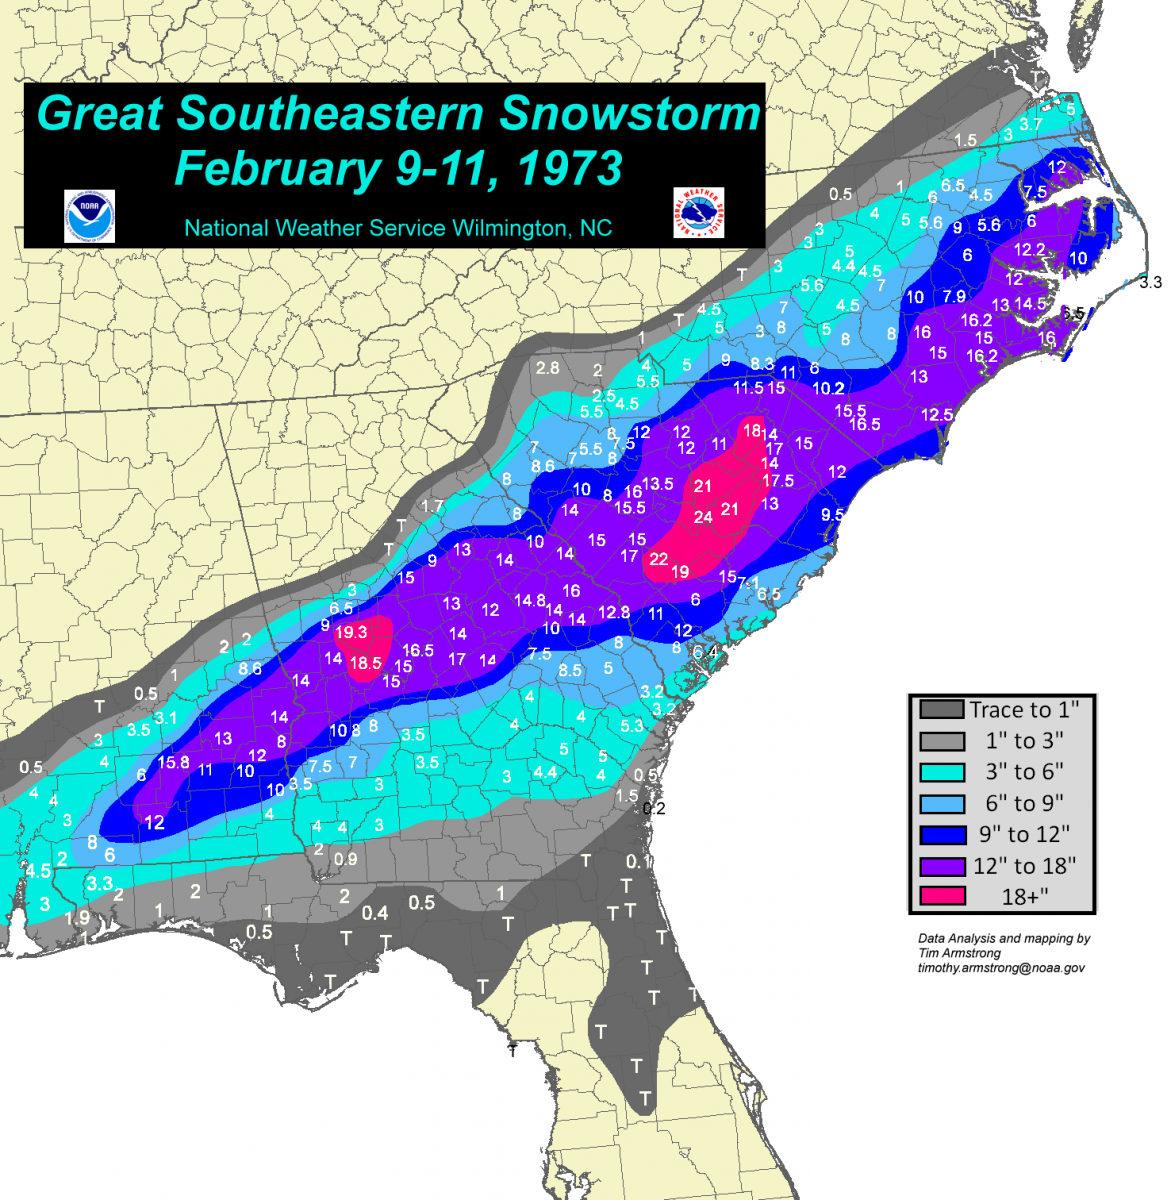 The Great Southeastern Snowstorm: February 9-11, 1973 on